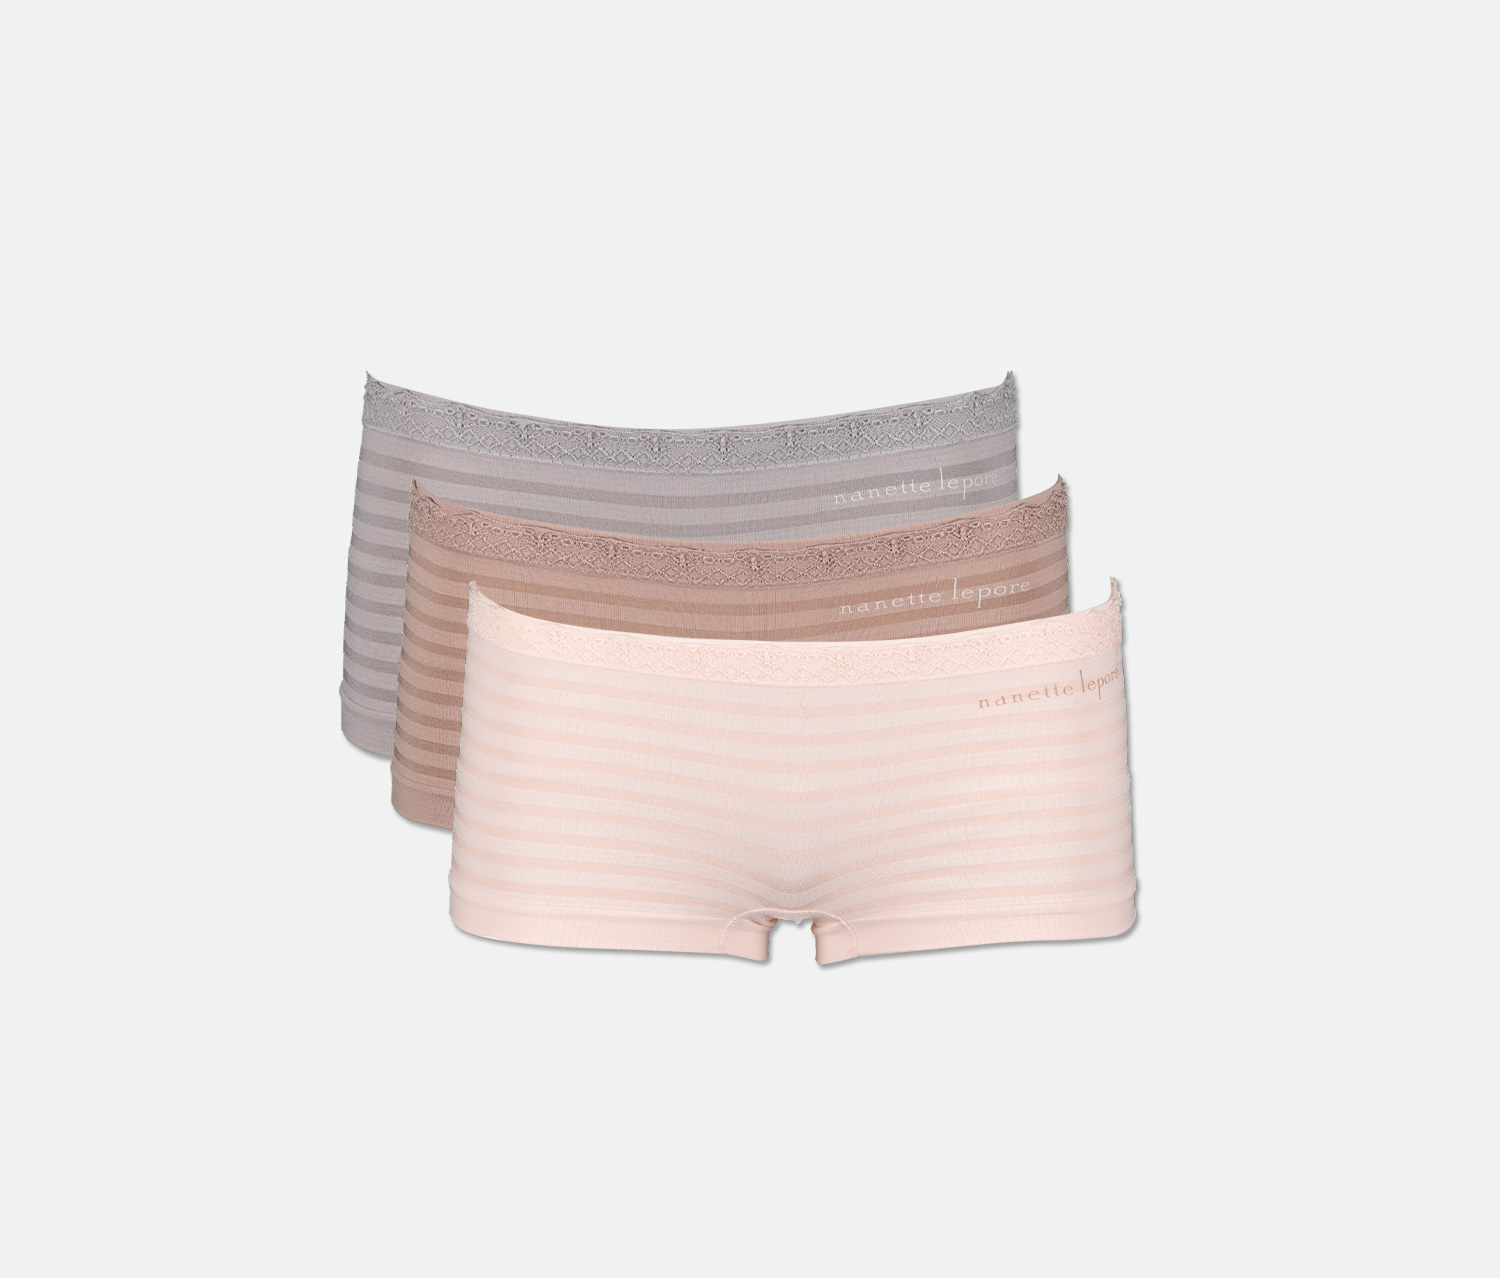 Women's 3 Pack Seamles Micro Lace Underwear, Dusty Pink/Light Pink/Blue-Gray